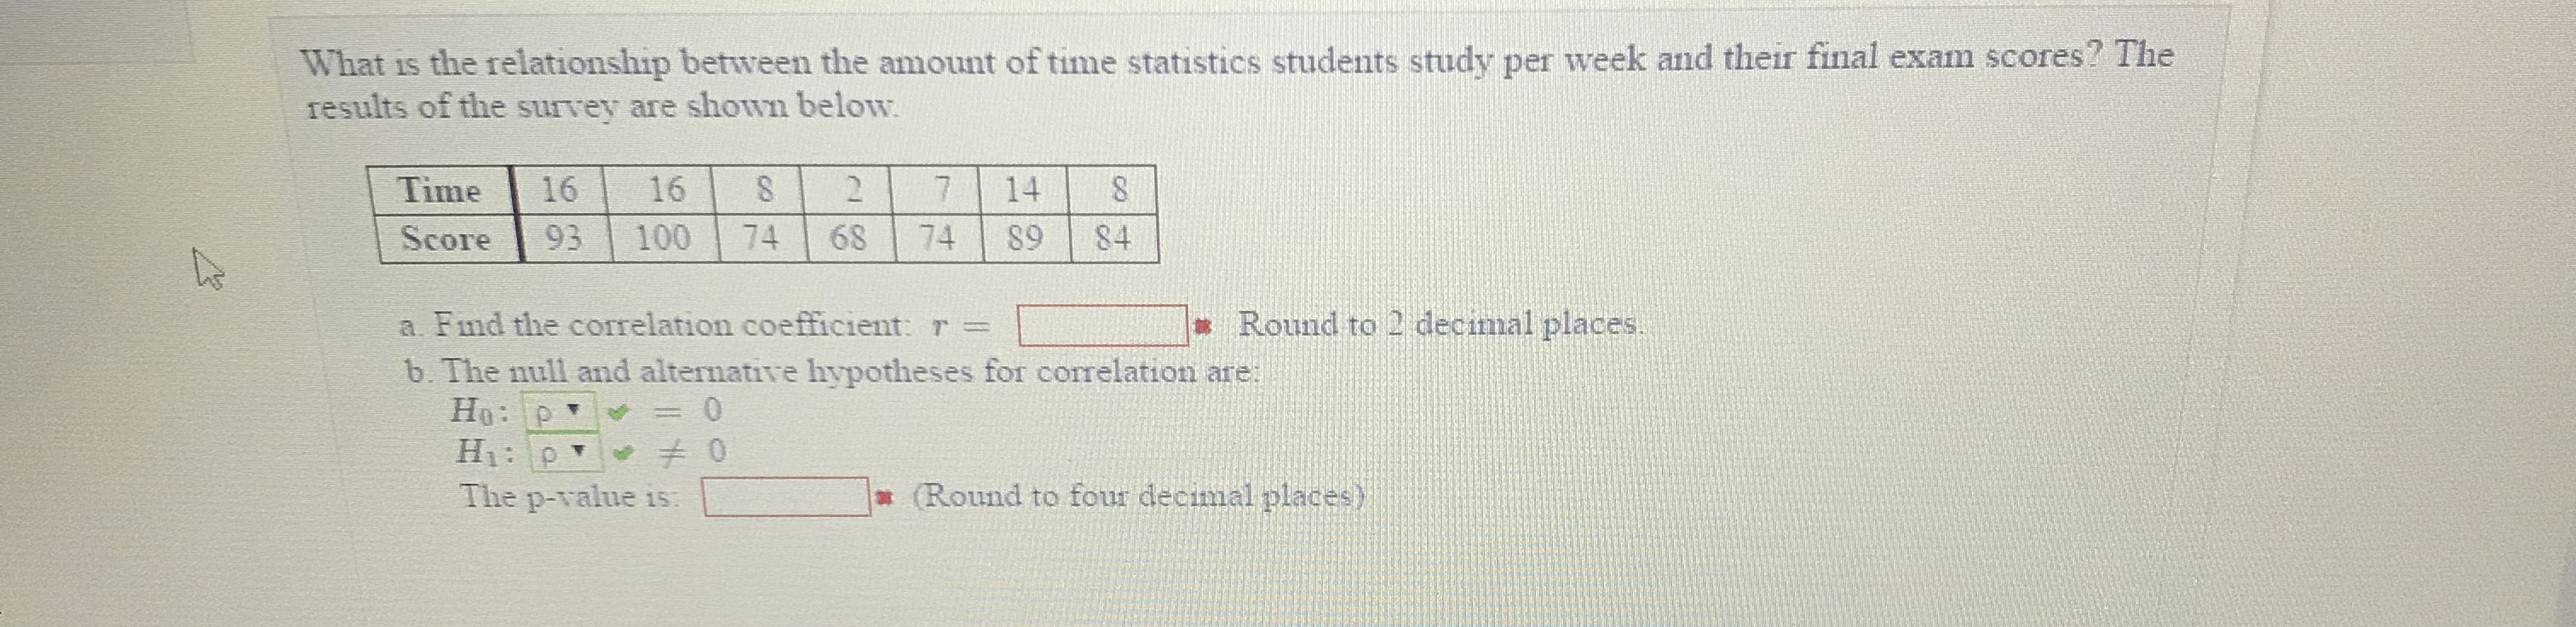 What is the relationship between the amount of time statistics students study per week and their final exam scores? The results of the survey are shown below Time 1616 27 14 8 Score 93 100 74 68 74 S9 84 Round to 2 decimal places a. Find the correlation coefficient r = b. The null and alternative hypotheses for corelation are: The p-value is Round to four decimal places)